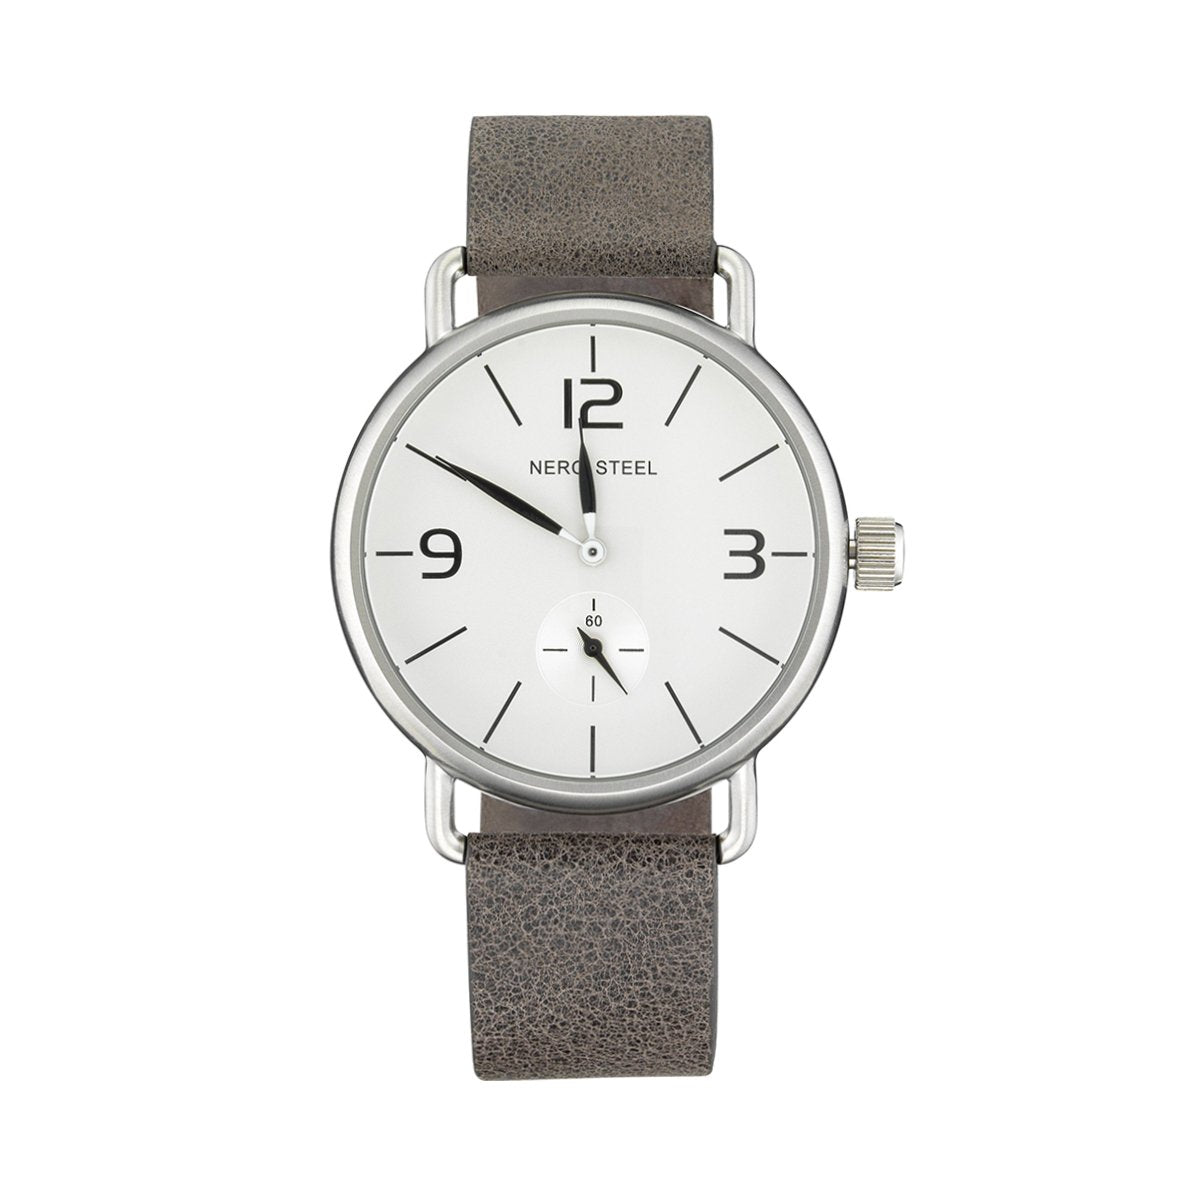 Nero Steel 114 Unisex Colt Charcoal Leather Strap Watch